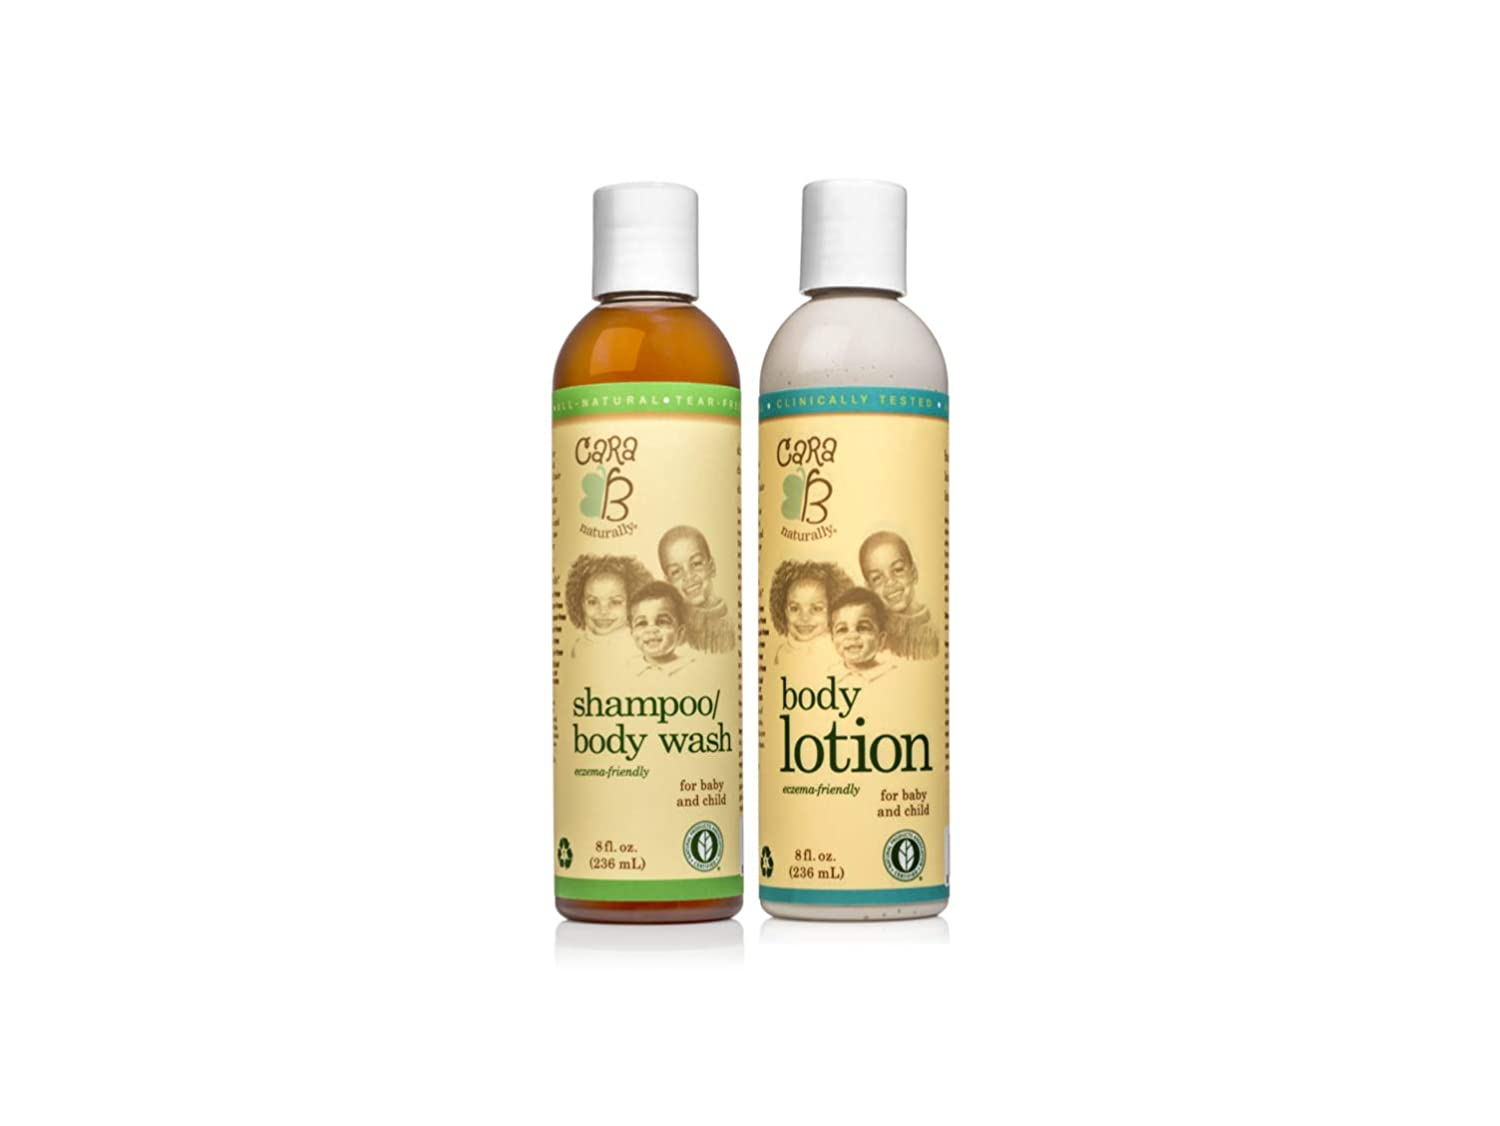 CARA B Naturally Bath Time Bundle - Includes Our Shampoo/Body Wash and Body Lotion – Pack of 2 at 8 Ounces Each